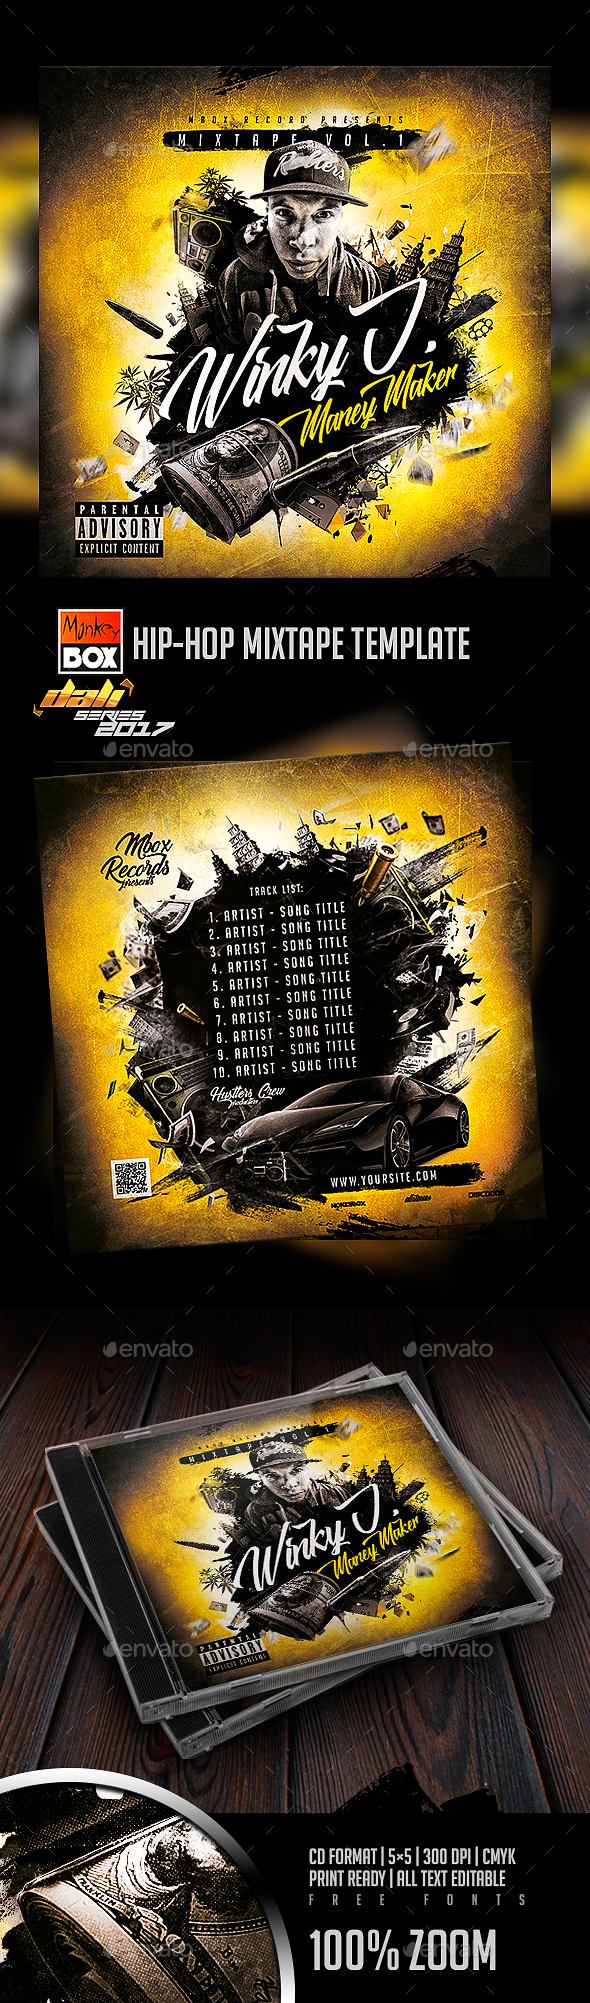 GraphicRiver Hip-Hop Mixtape Template 20576892